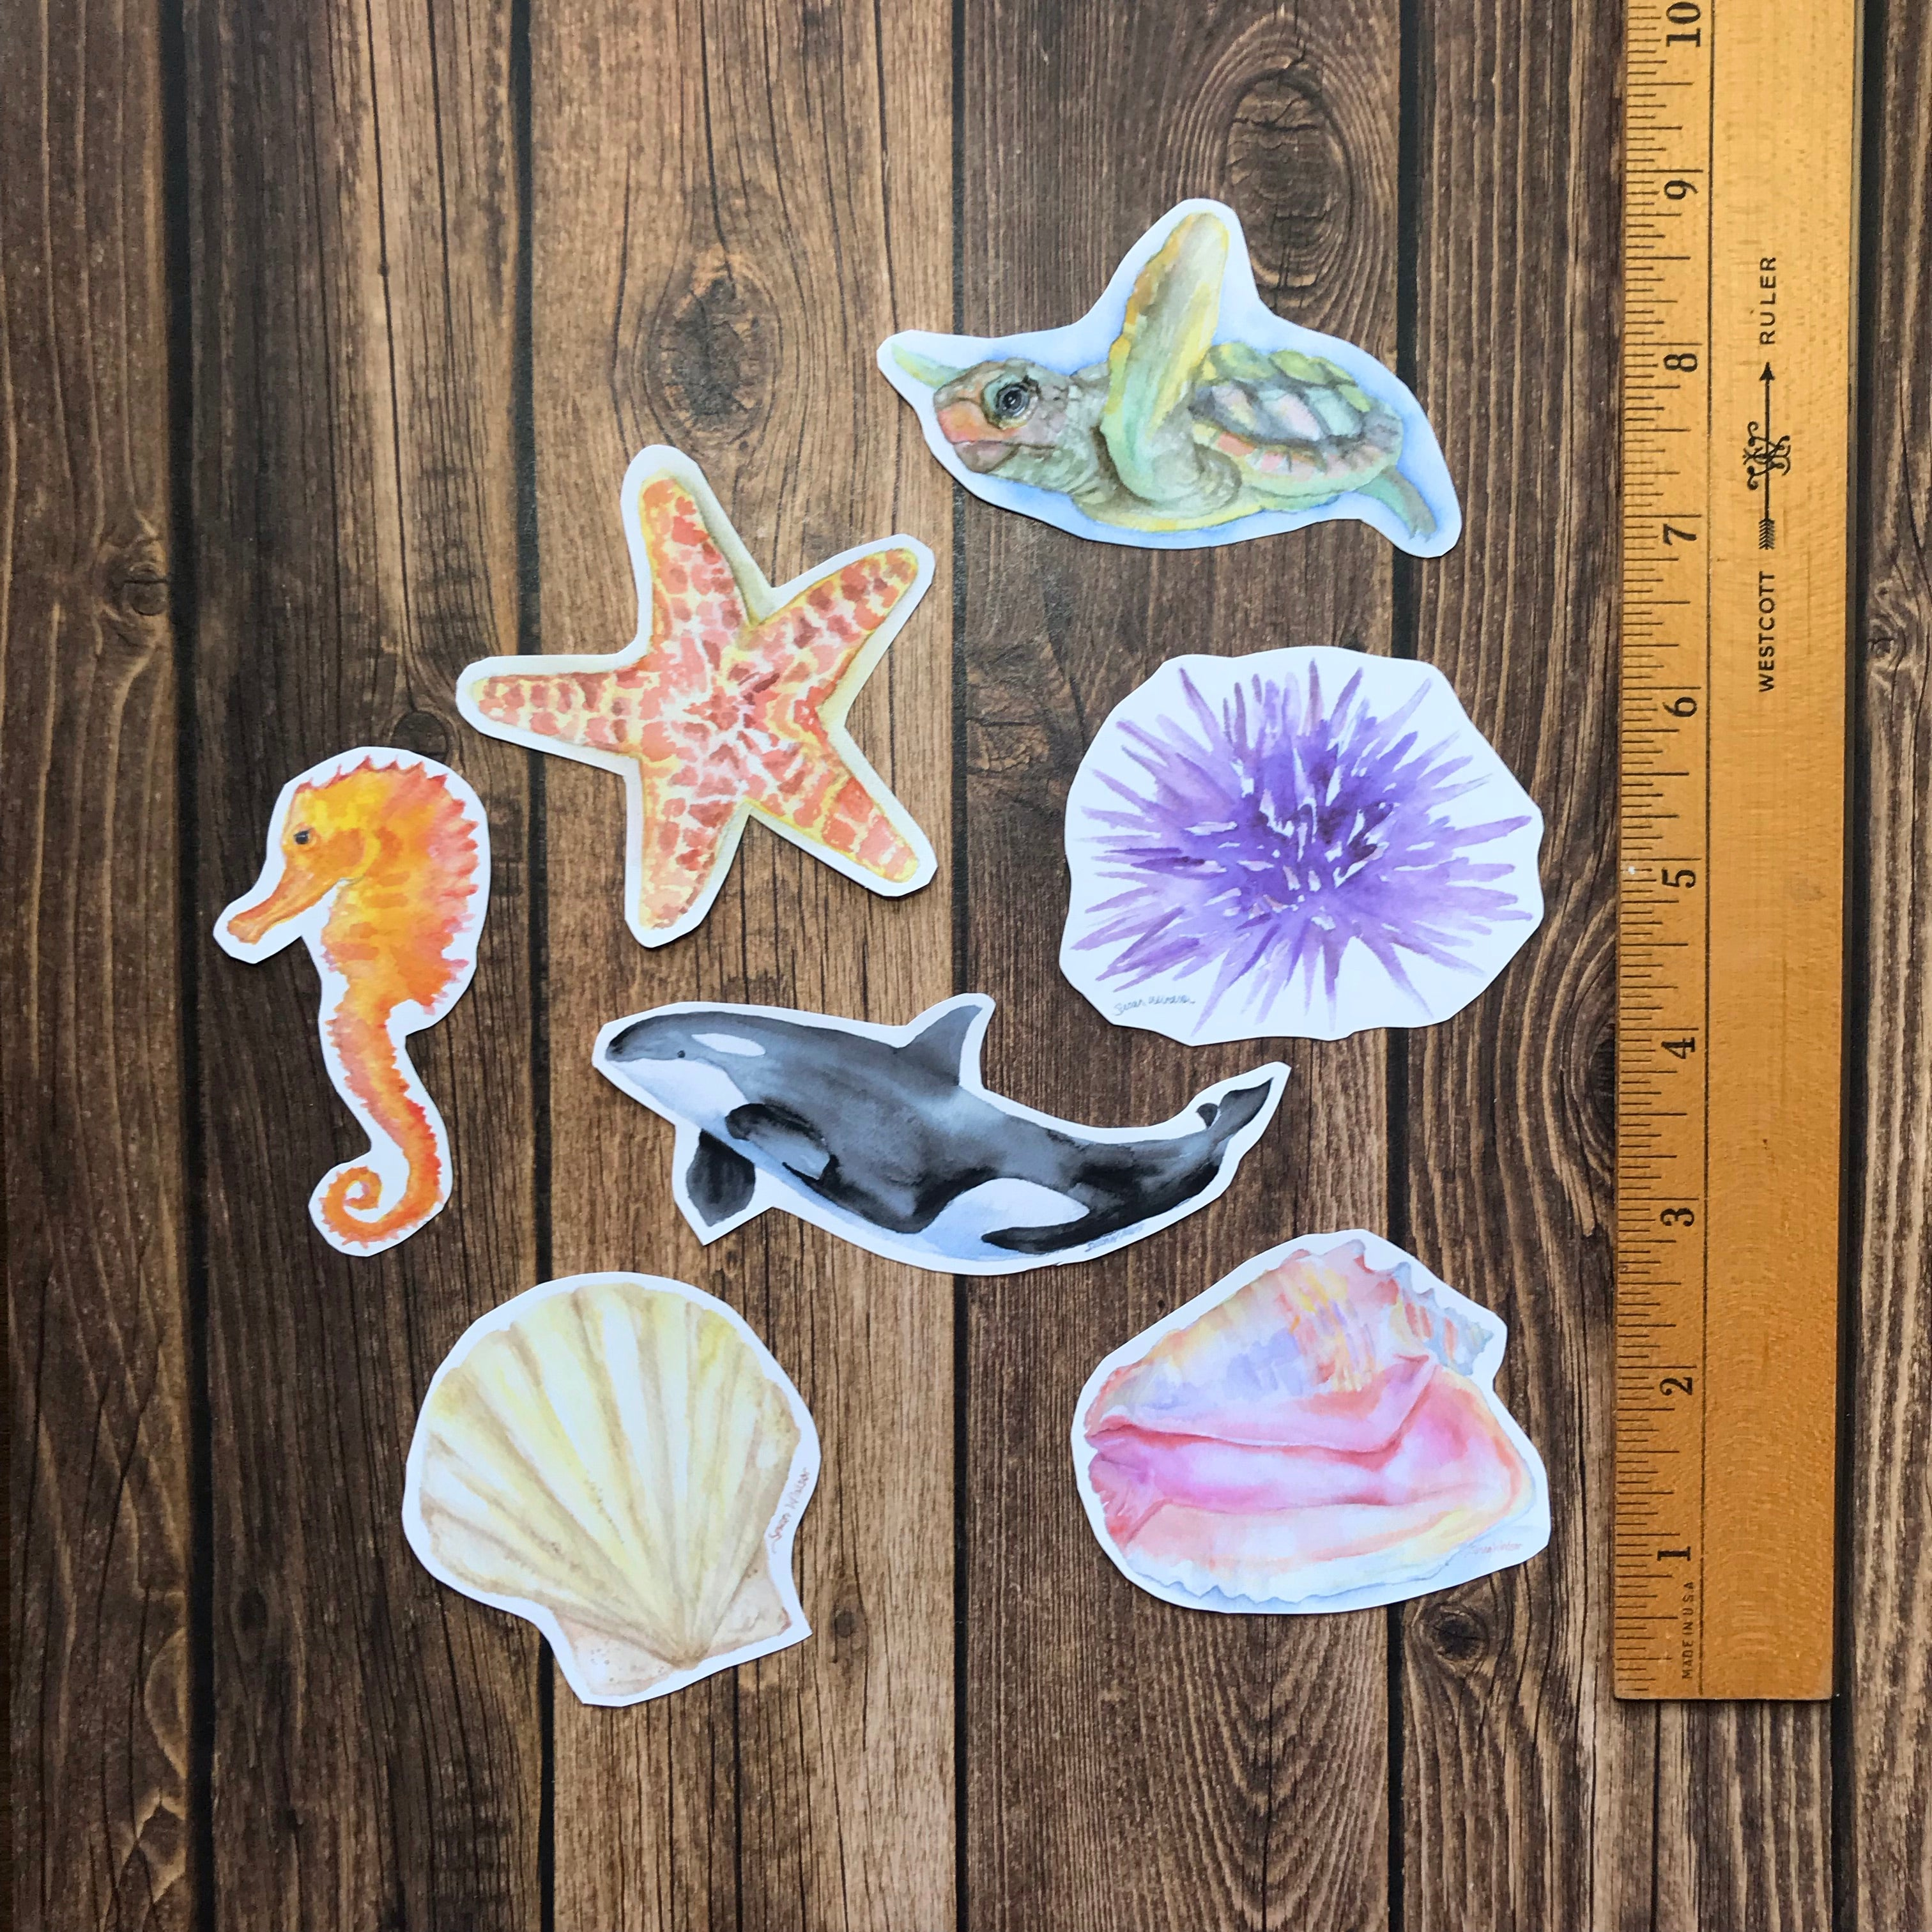 Ocean Creatures Sticker Set